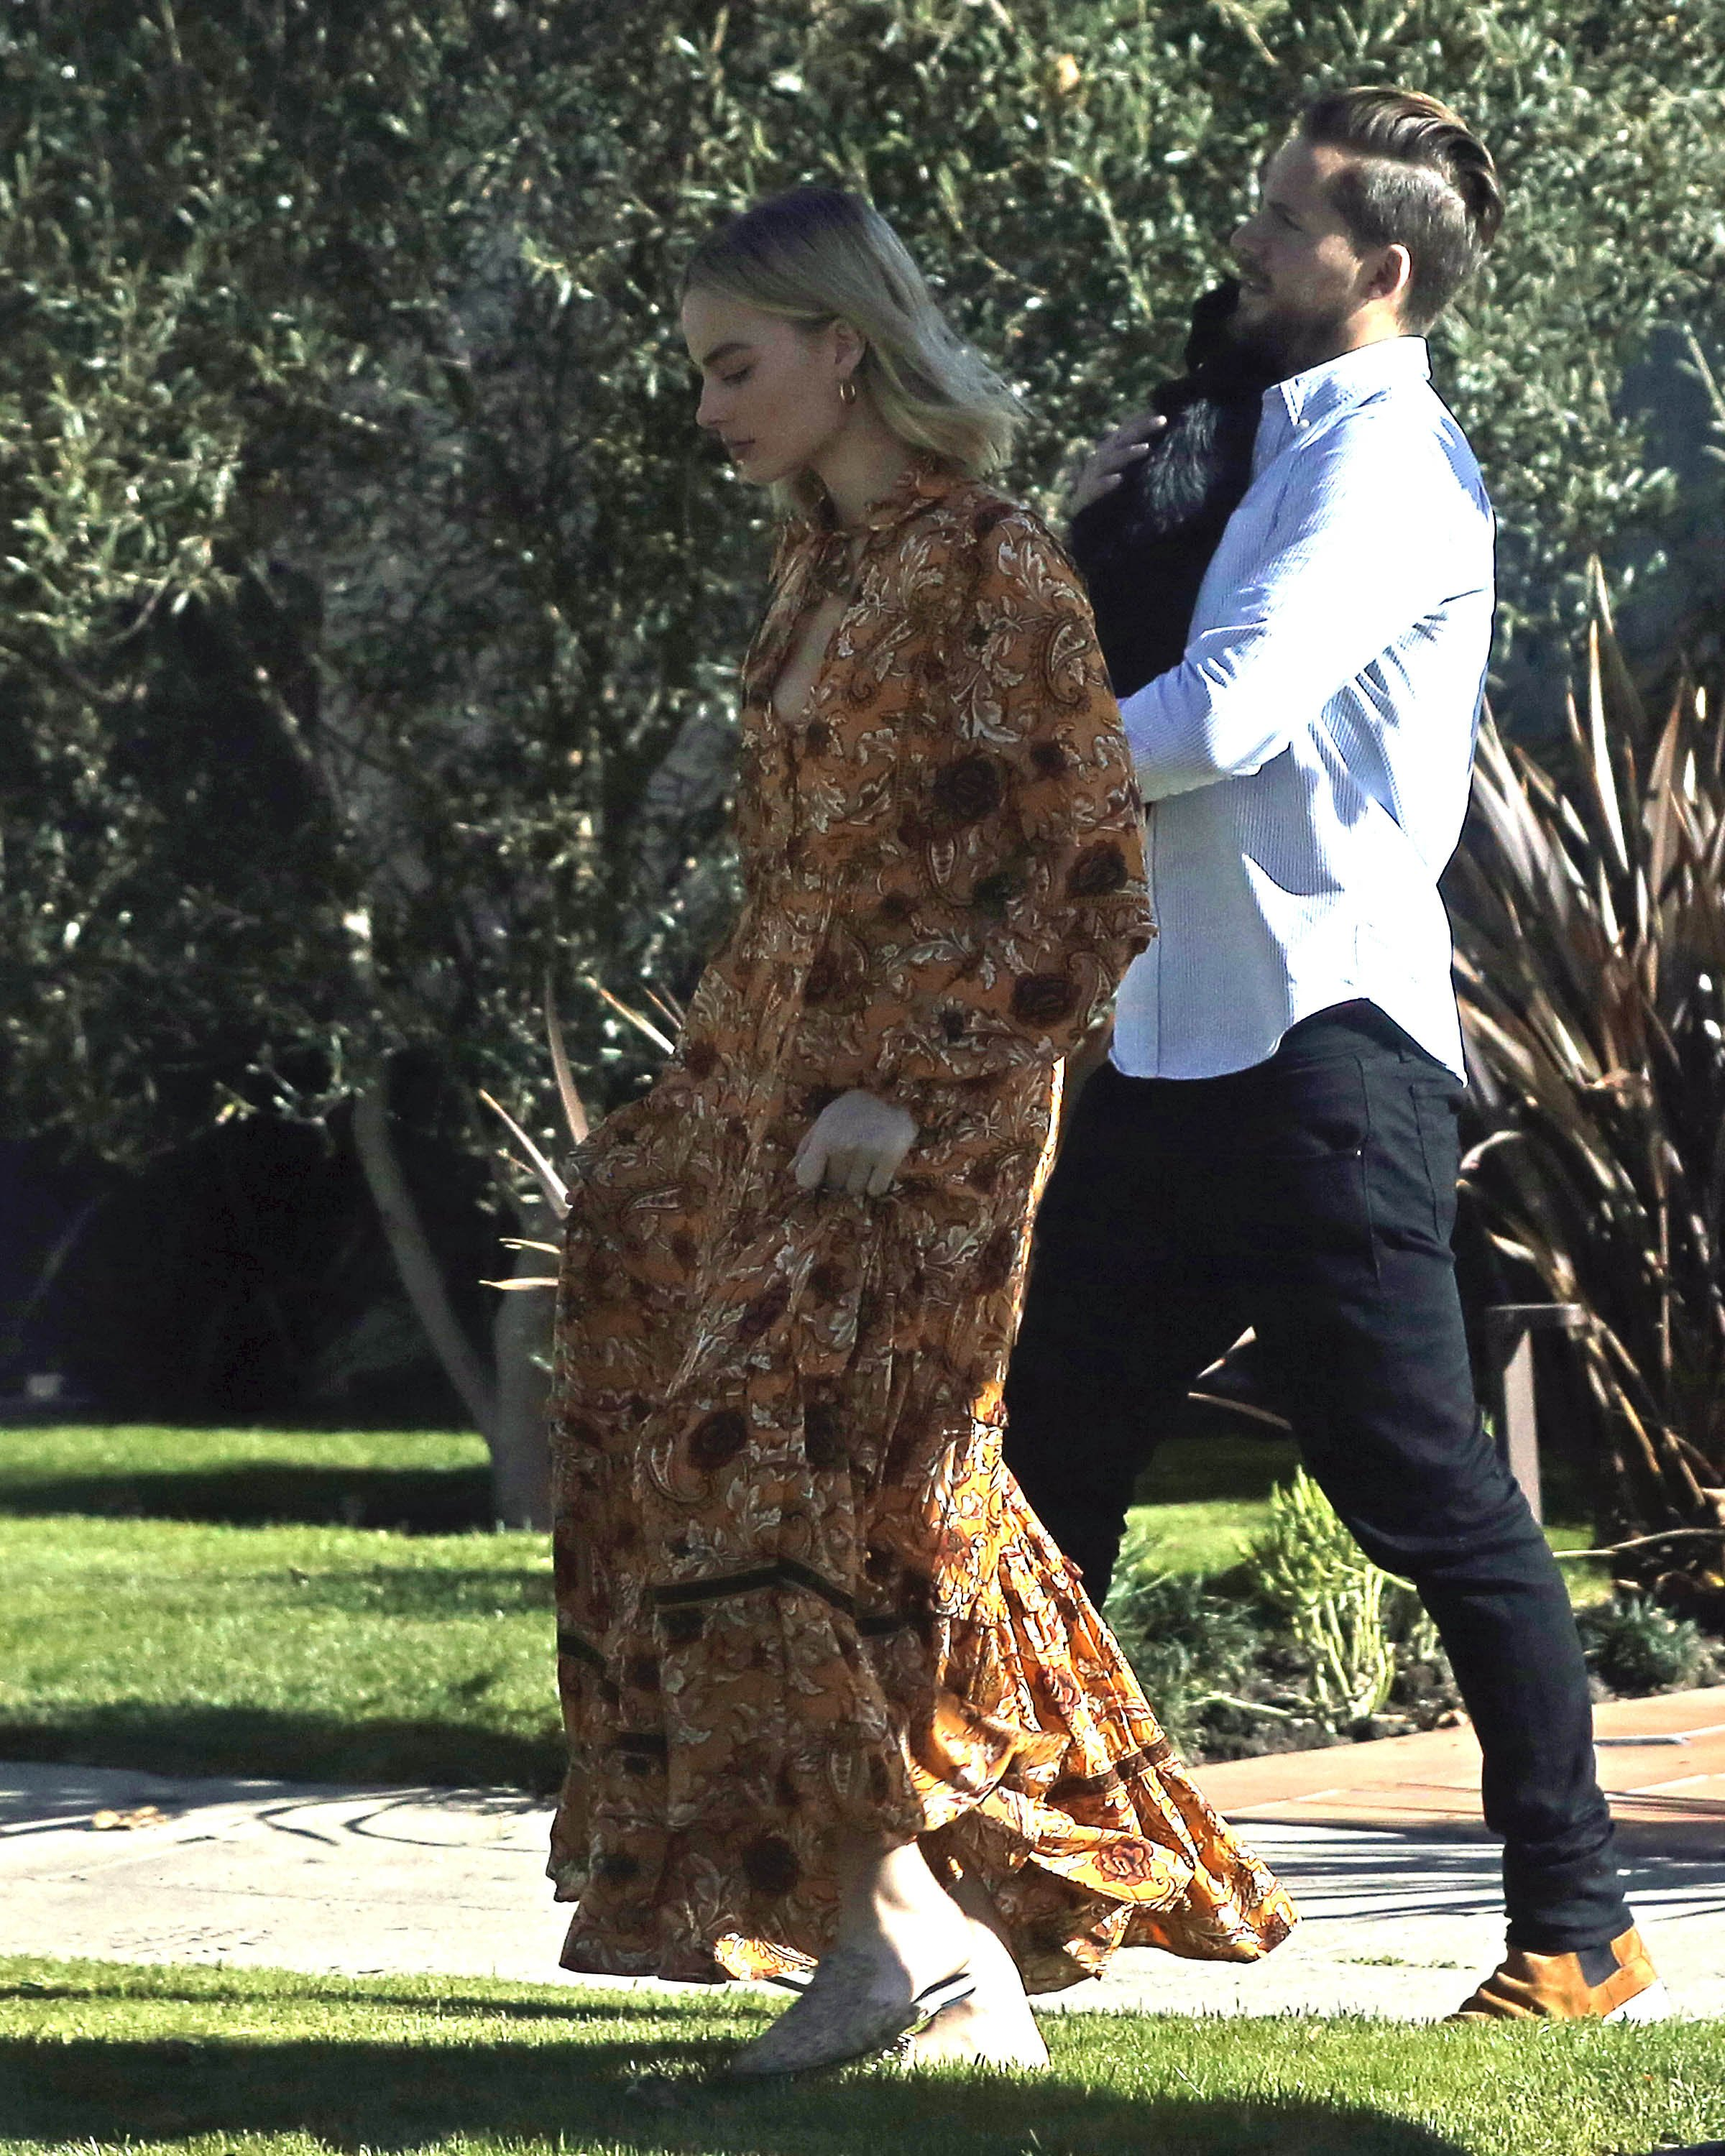 Exclusive, Los Angeles, CA - 20171211 - Margot Robbie and Tom Ackerley's Dog Get Loose in Their Neighborhood Until Tom Catches him and Takes him Back home  -PICTURED: Margot Robbie and Tom Ackerley with dog -, Image: 357602699, License: Rights-managed, Restrictions: Exclusive, Model Release: no, Credit line: Profimedia, INSTAR Images